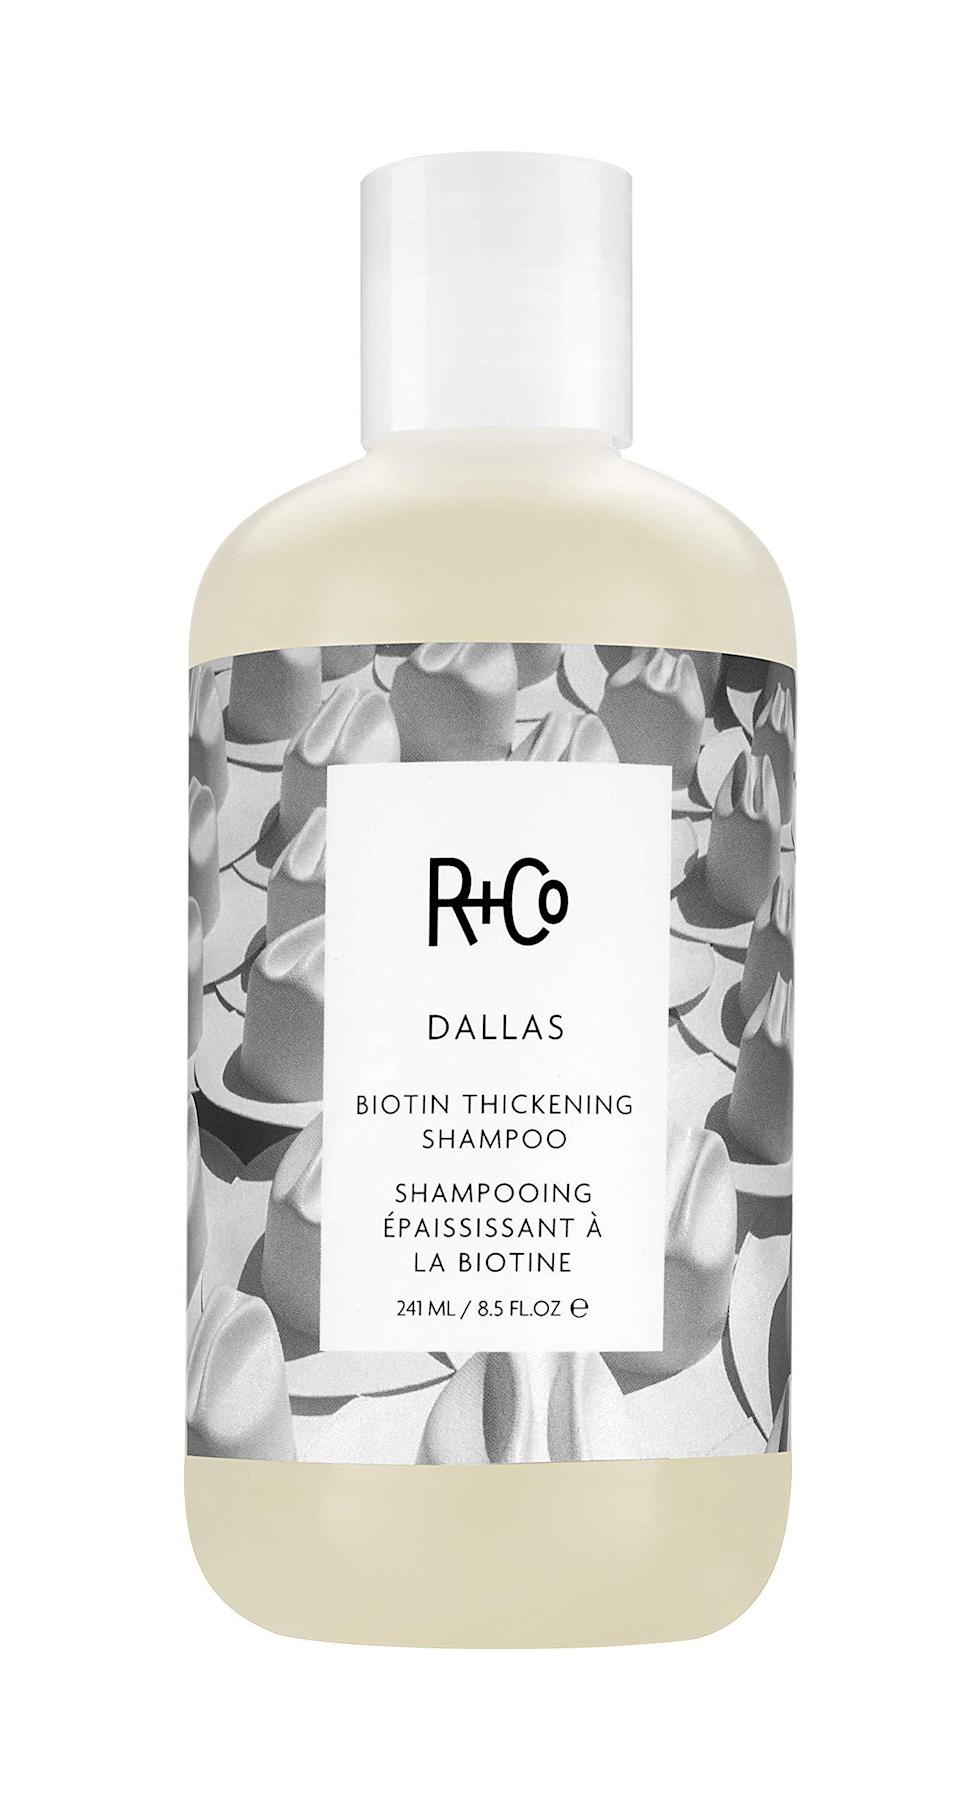 """<h2>R+Co<br></h2><br>Get 30% off bestsellers<br><br><strong><em>Shop <a href=""""https://amzn.to/3wrvUcP"""" rel=""""nofollow noopener"""" target=""""_blank"""" data-ylk=""""slk:R+Co"""" class=""""link rapid-noclick-resp"""">R+Co</a></em></strong><br><br><strong>R+Co</strong> Dallas Biotin Thickening Shampoo, $, available at <a href=""""https://amzn.to/3iUbRjt"""" rel=""""nofollow noopener"""" target=""""_blank"""" data-ylk=""""slk:Amazon"""" class=""""link rapid-noclick-resp"""">Amazon</a>"""